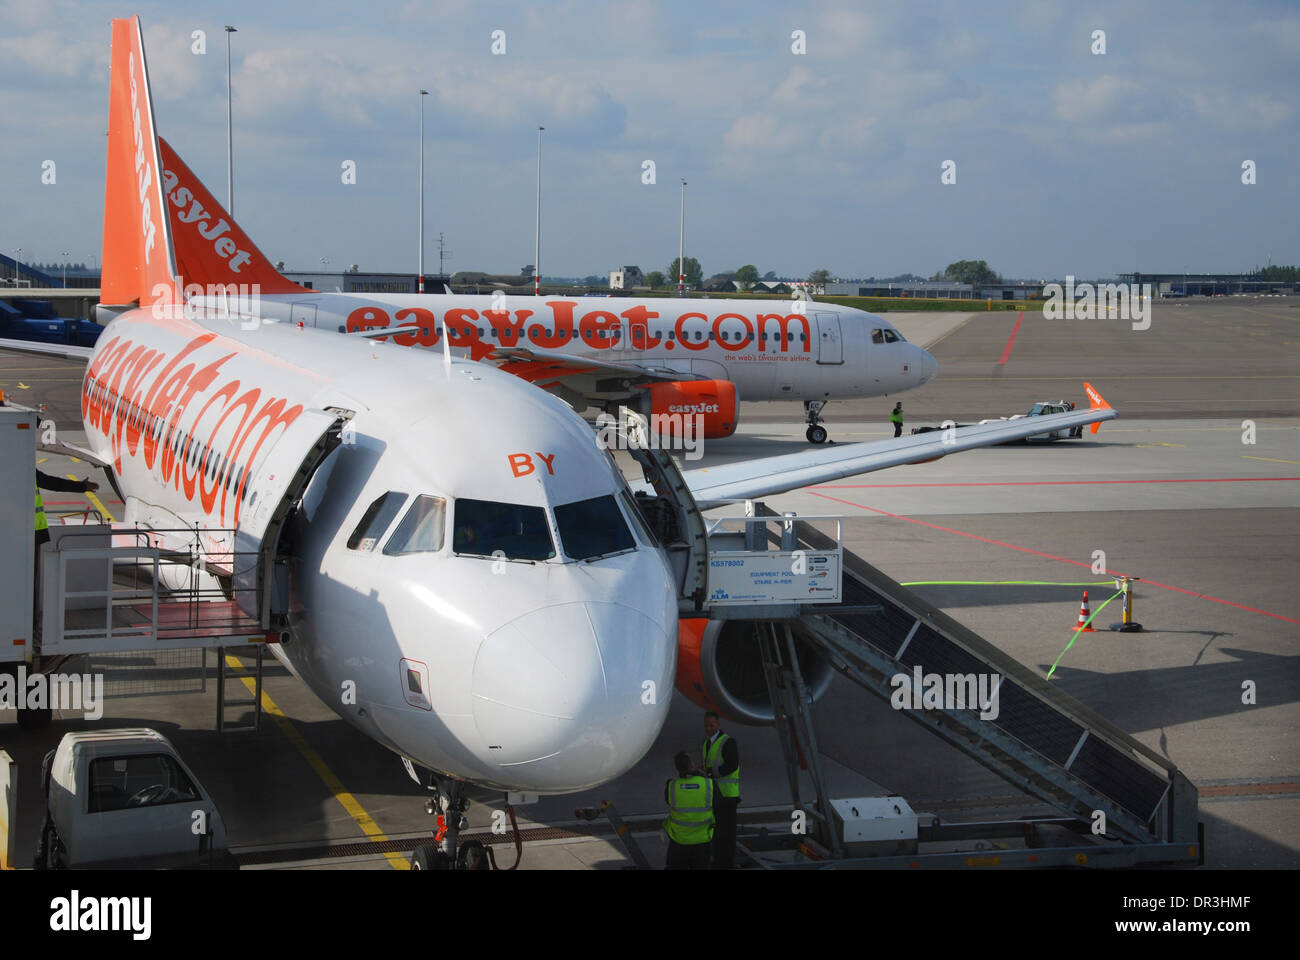 EasyJet Airbus planes at Schiphol Airport Amsterdam Netherlands - Stock Image